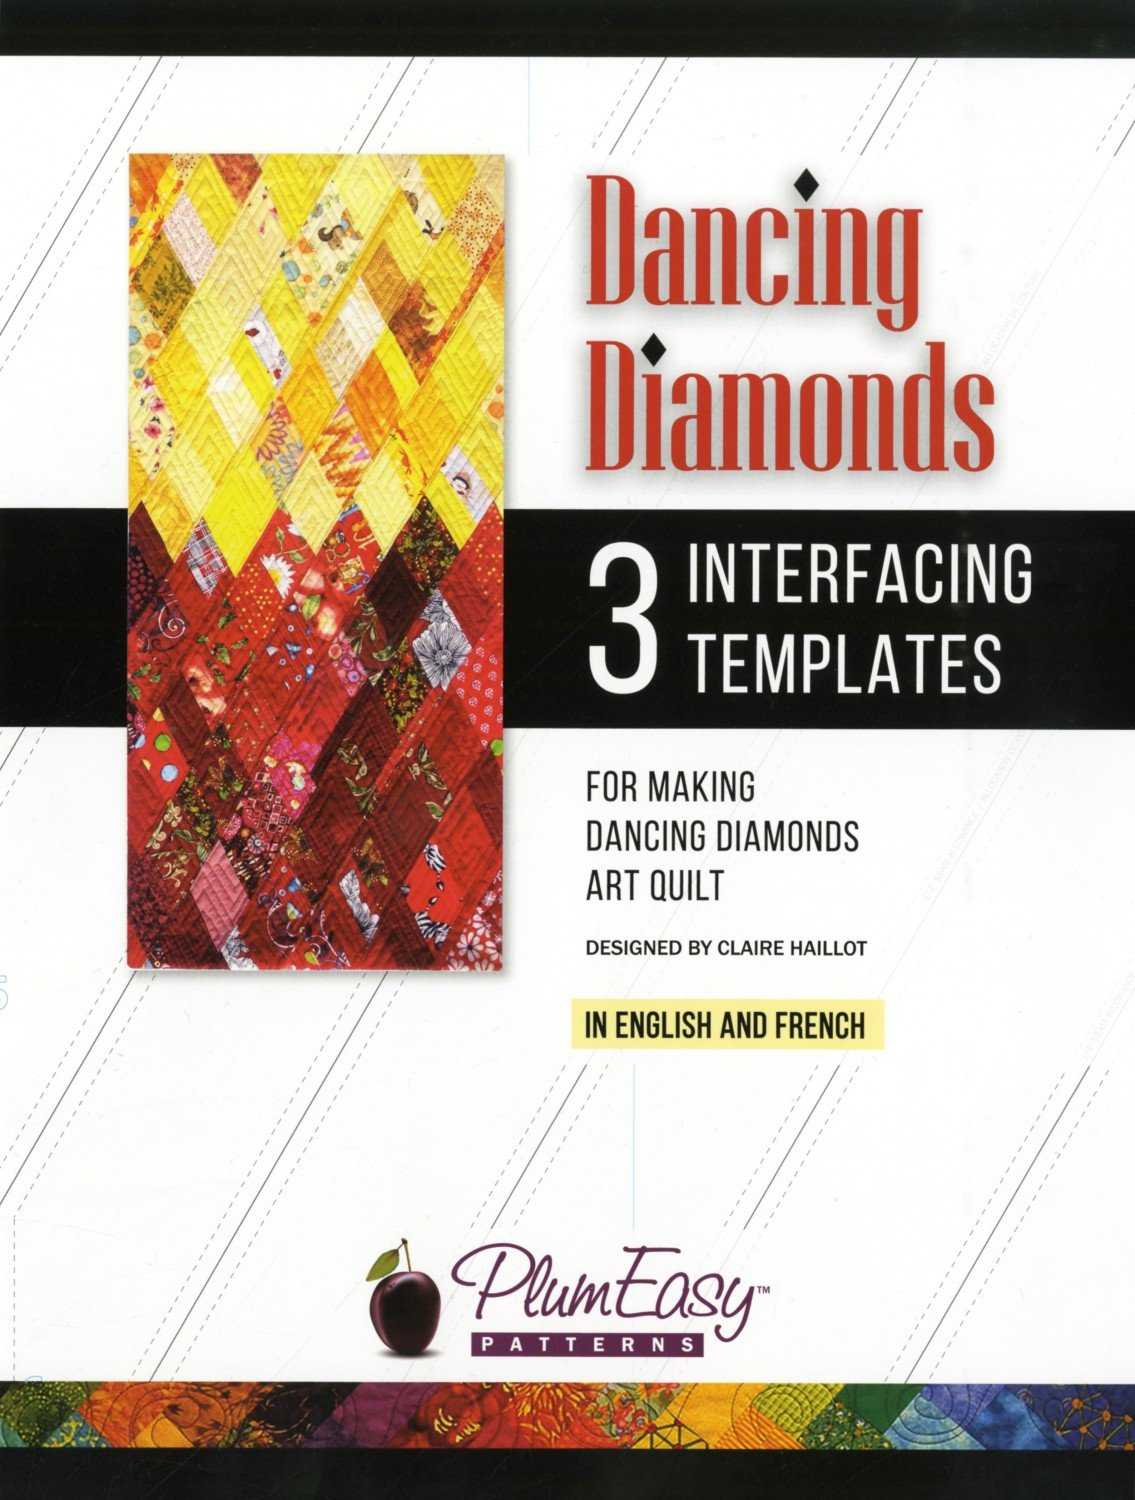 Dancing Diamonds Art Quilt interfacing template